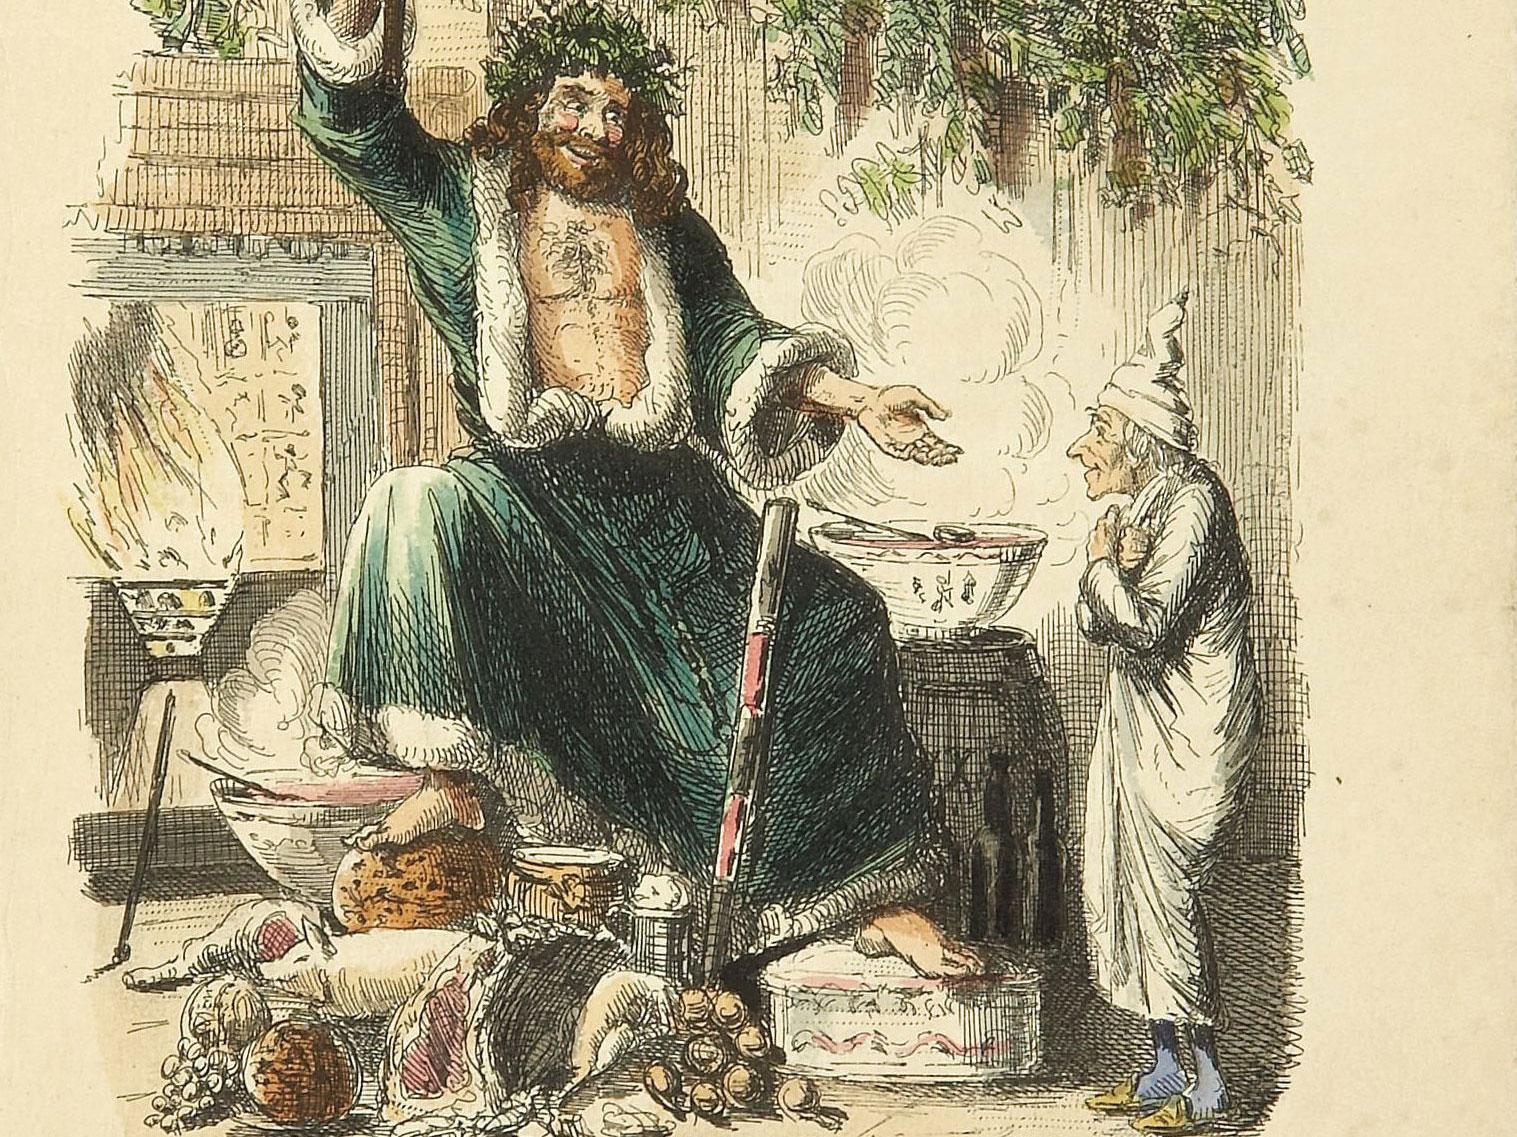 Did Charles Dickens invent Christmas? Bah, humbug, no he didn't | The Independent